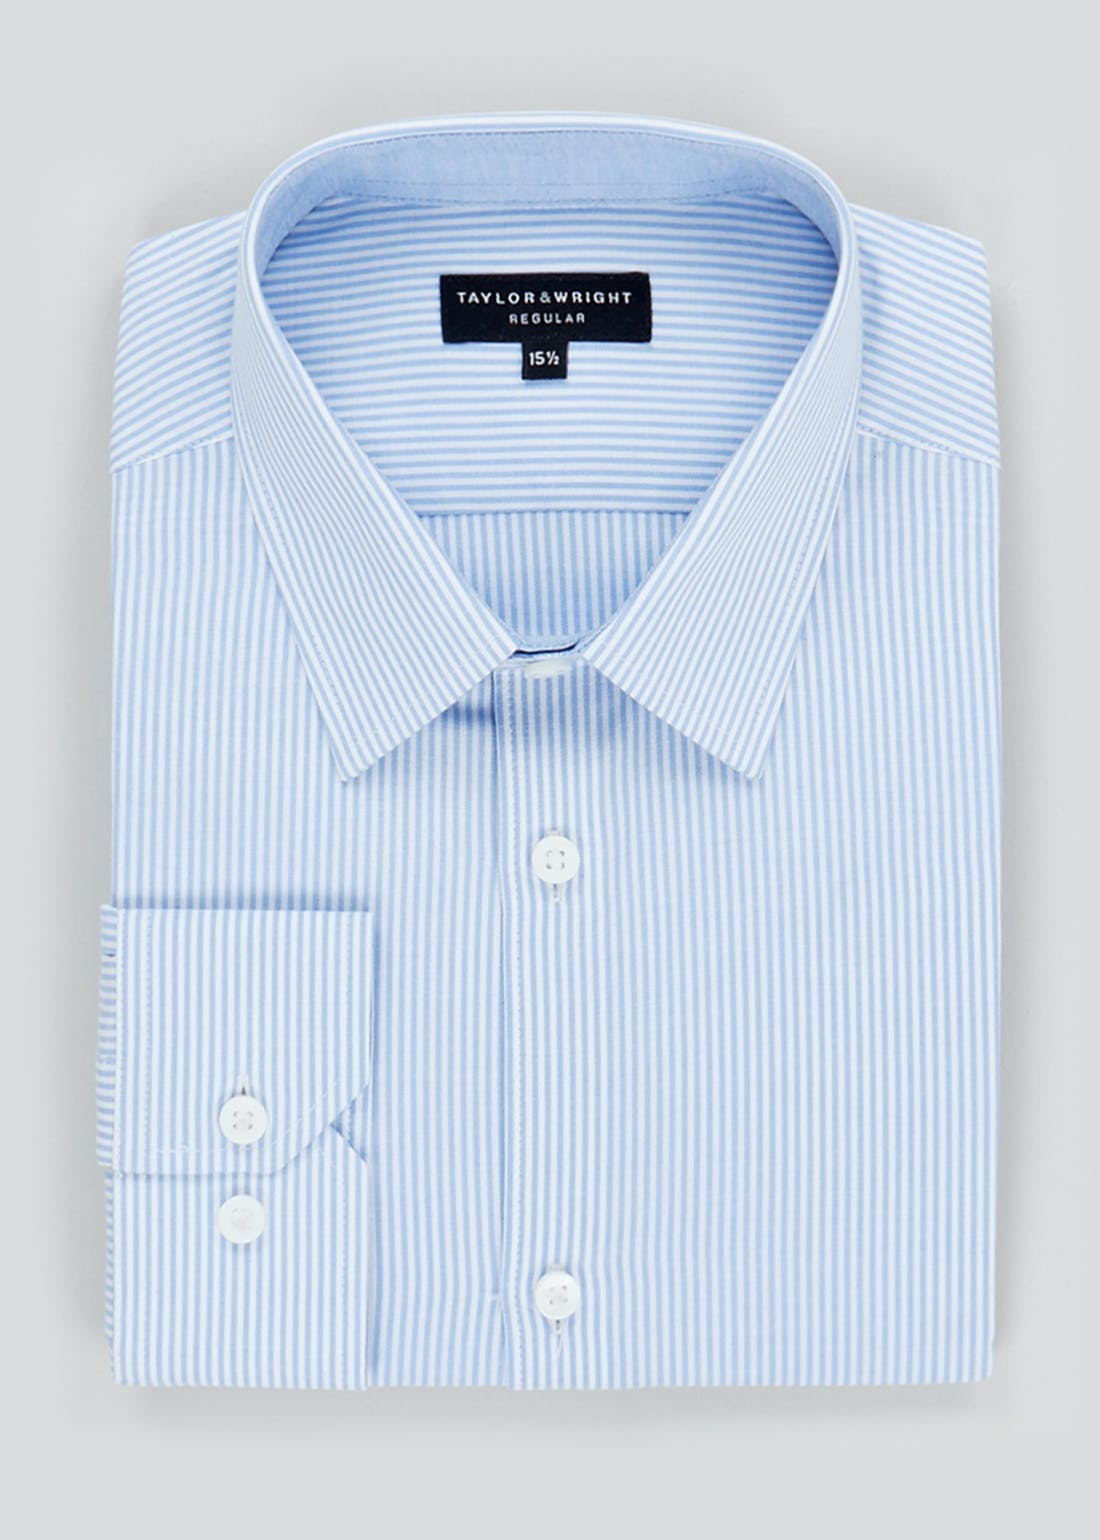 Taylor & Wright Long Sleeve Regular Fit Stripe Shirt